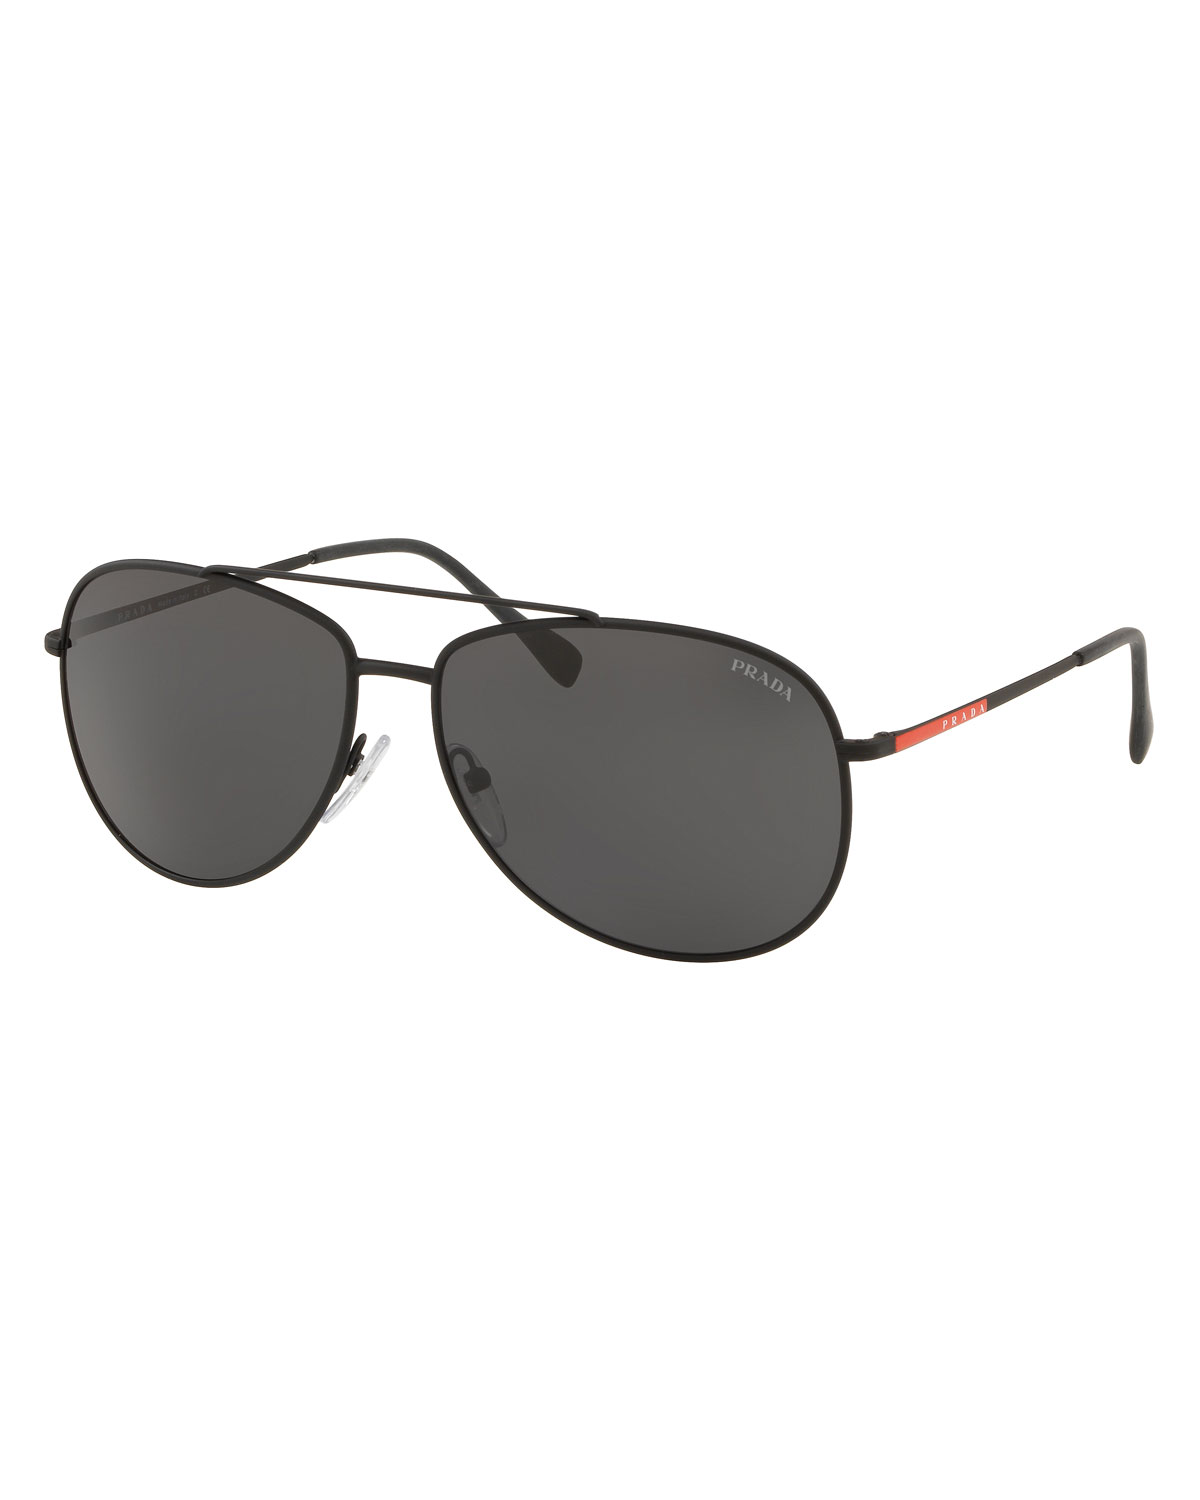 b64146bf918 Prada Men s Metal Aviator Sunglasses In Black Gray